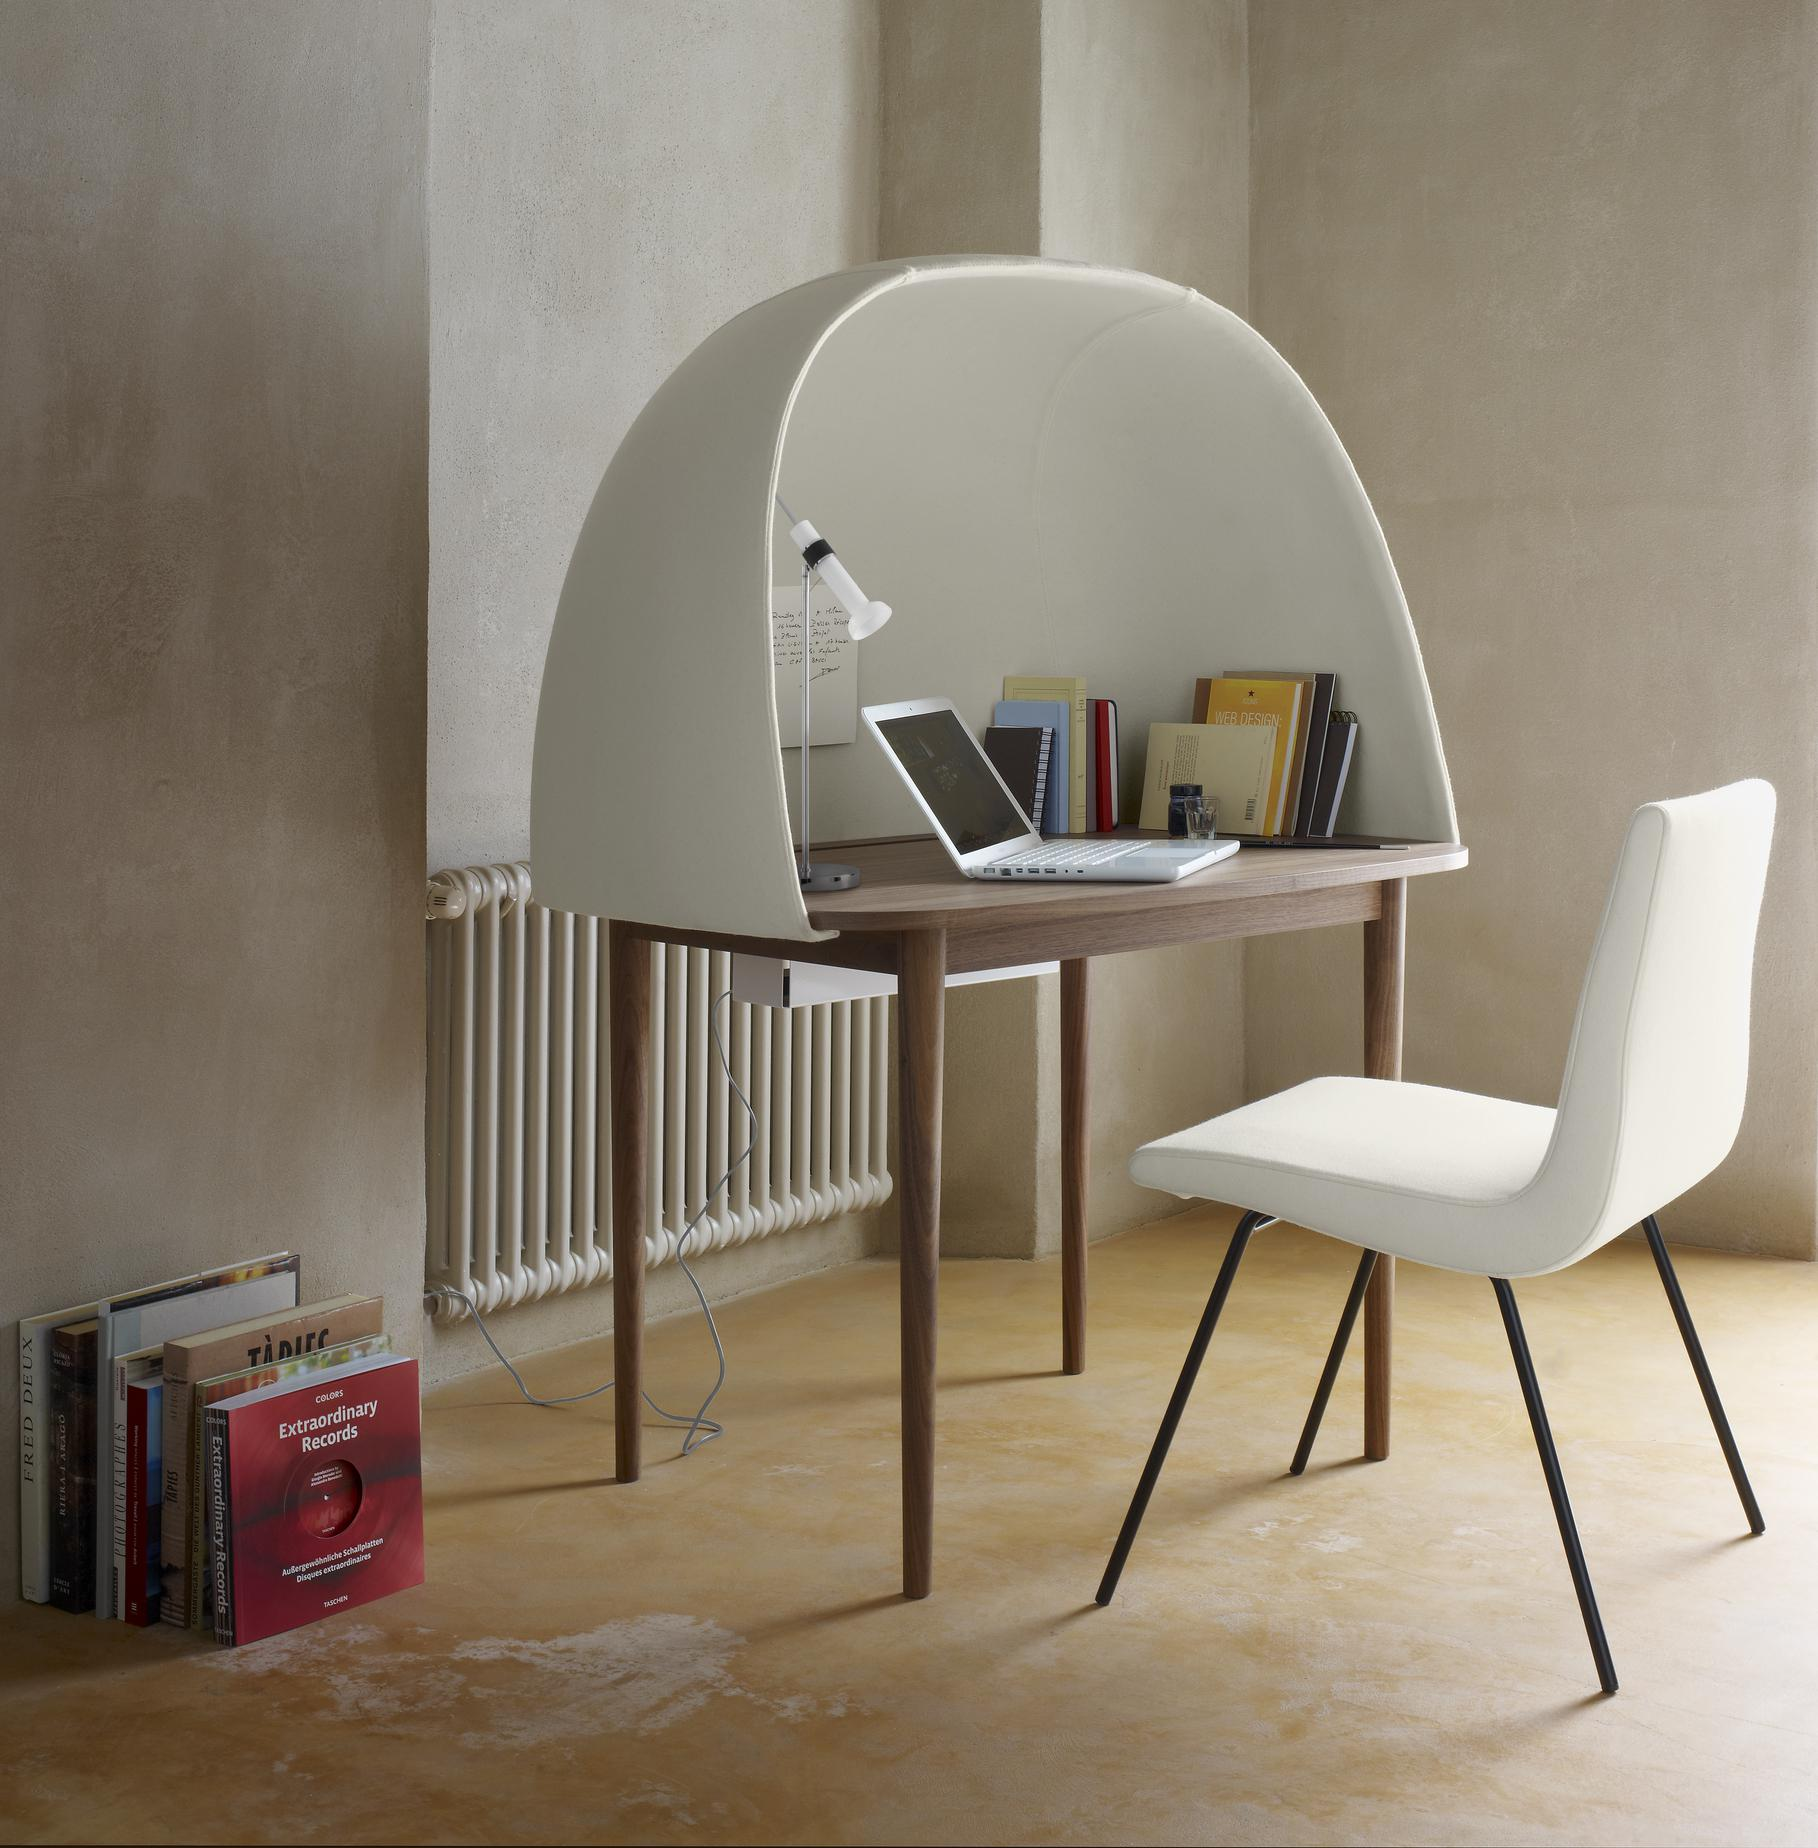 rewrite desks secretary from designer gamfratesi ligne roset official site. Black Bedroom Furniture Sets. Home Design Ideas